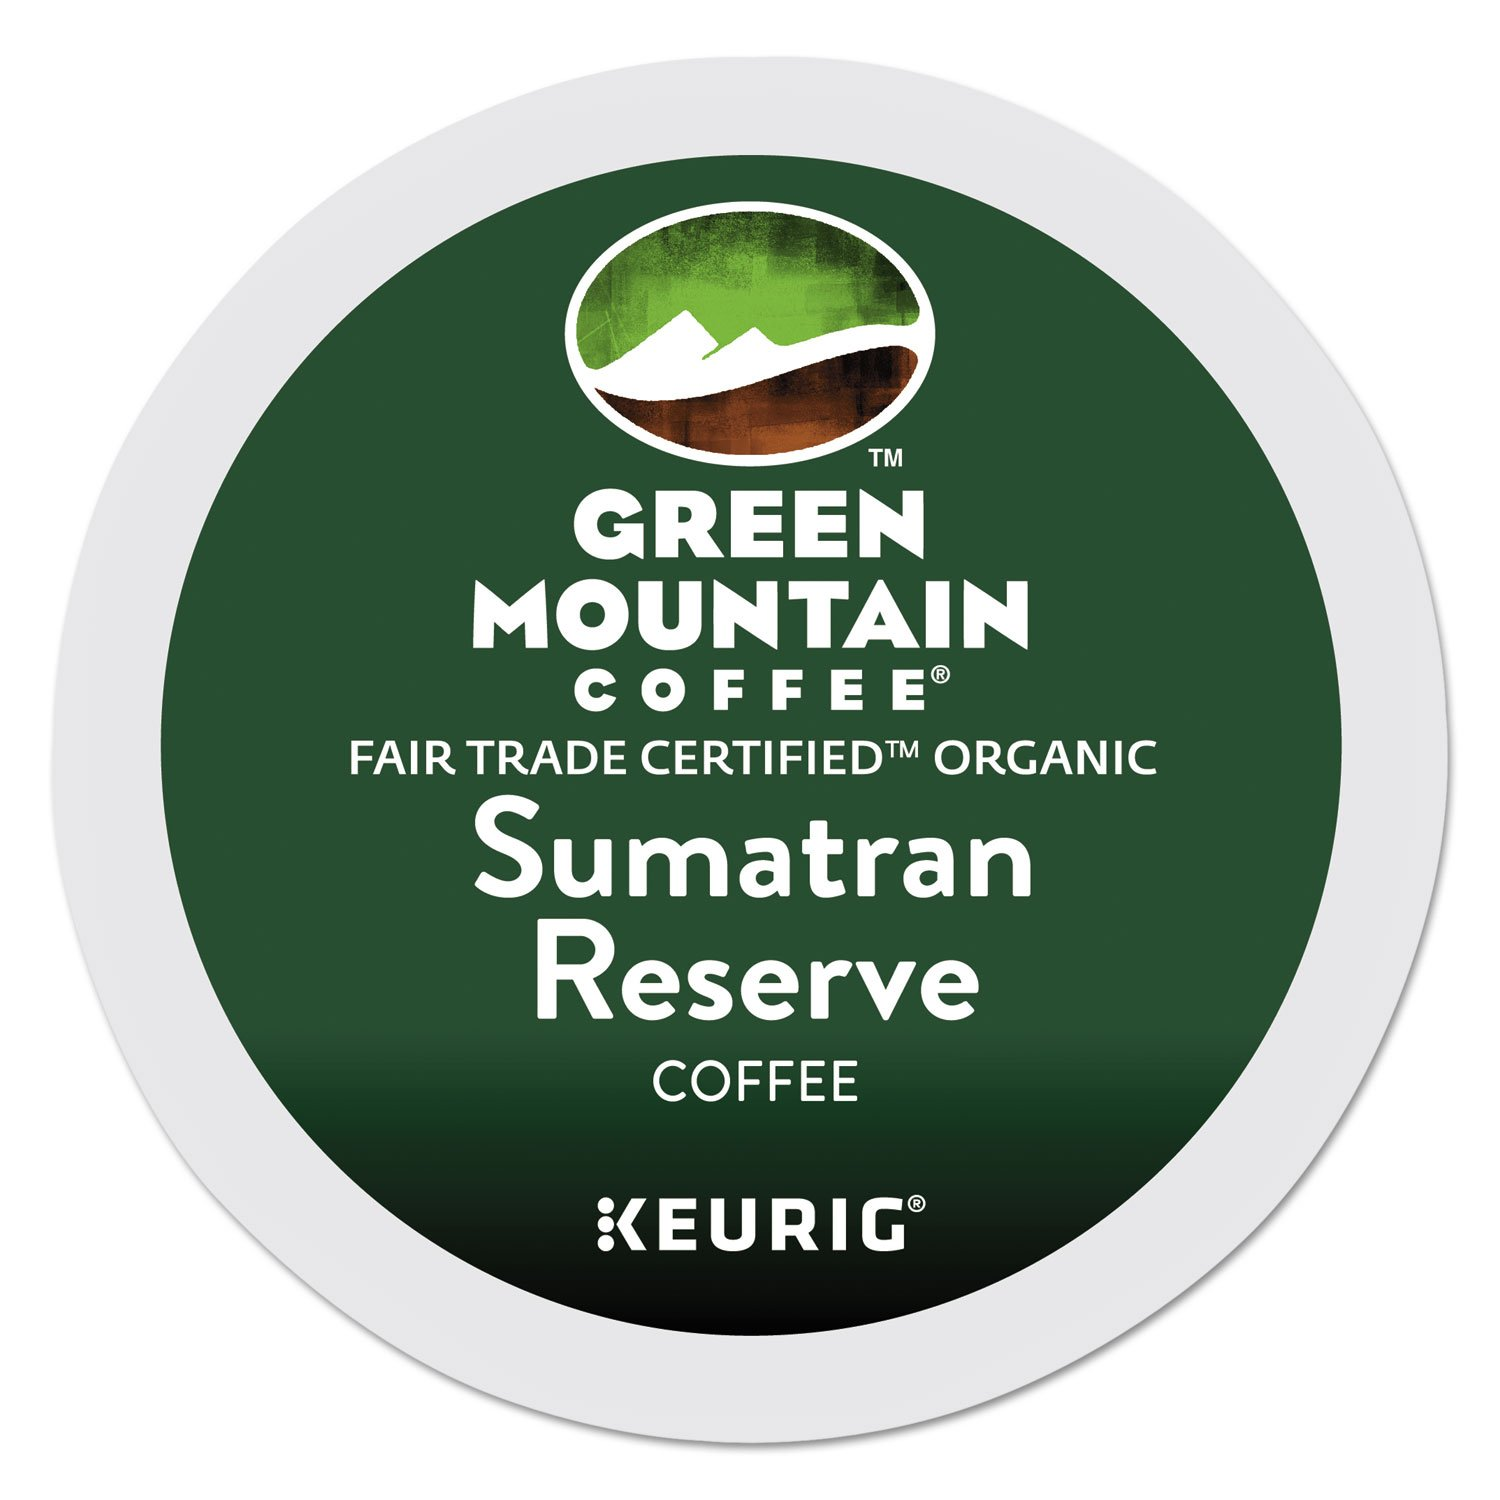 B004AFNKQ2 Green Mountain Coffee Roasters Sumatra Reserve single serve K-Cup pods for Keurig brewers, 96 Count 716jDMrlPrL